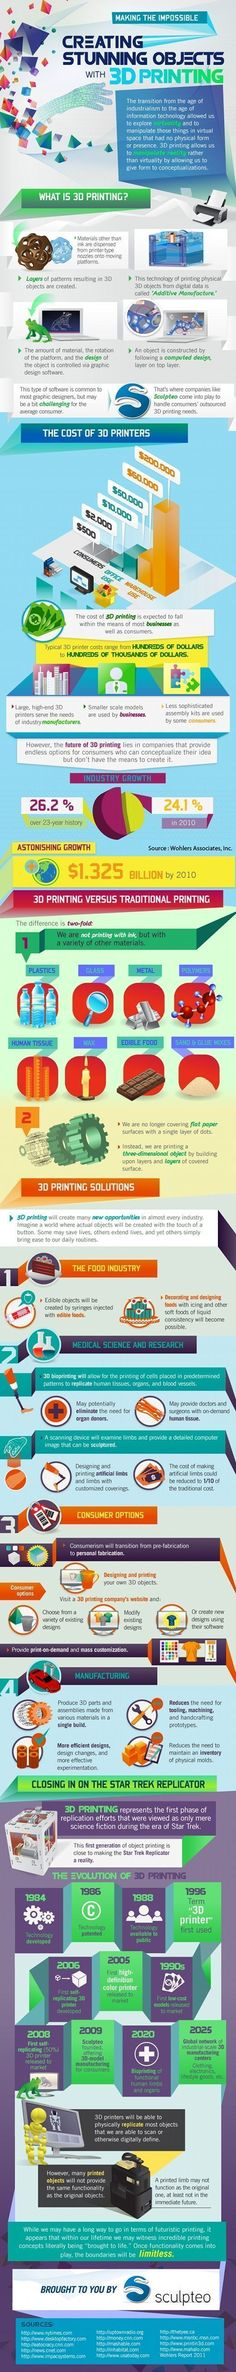 3D printing infographic explaining it all. Really great perspective of the potentials of additive manufacturing. Maybe something for 3D Printer Chat? #3dprintingbusiness #3dprintinginfographic